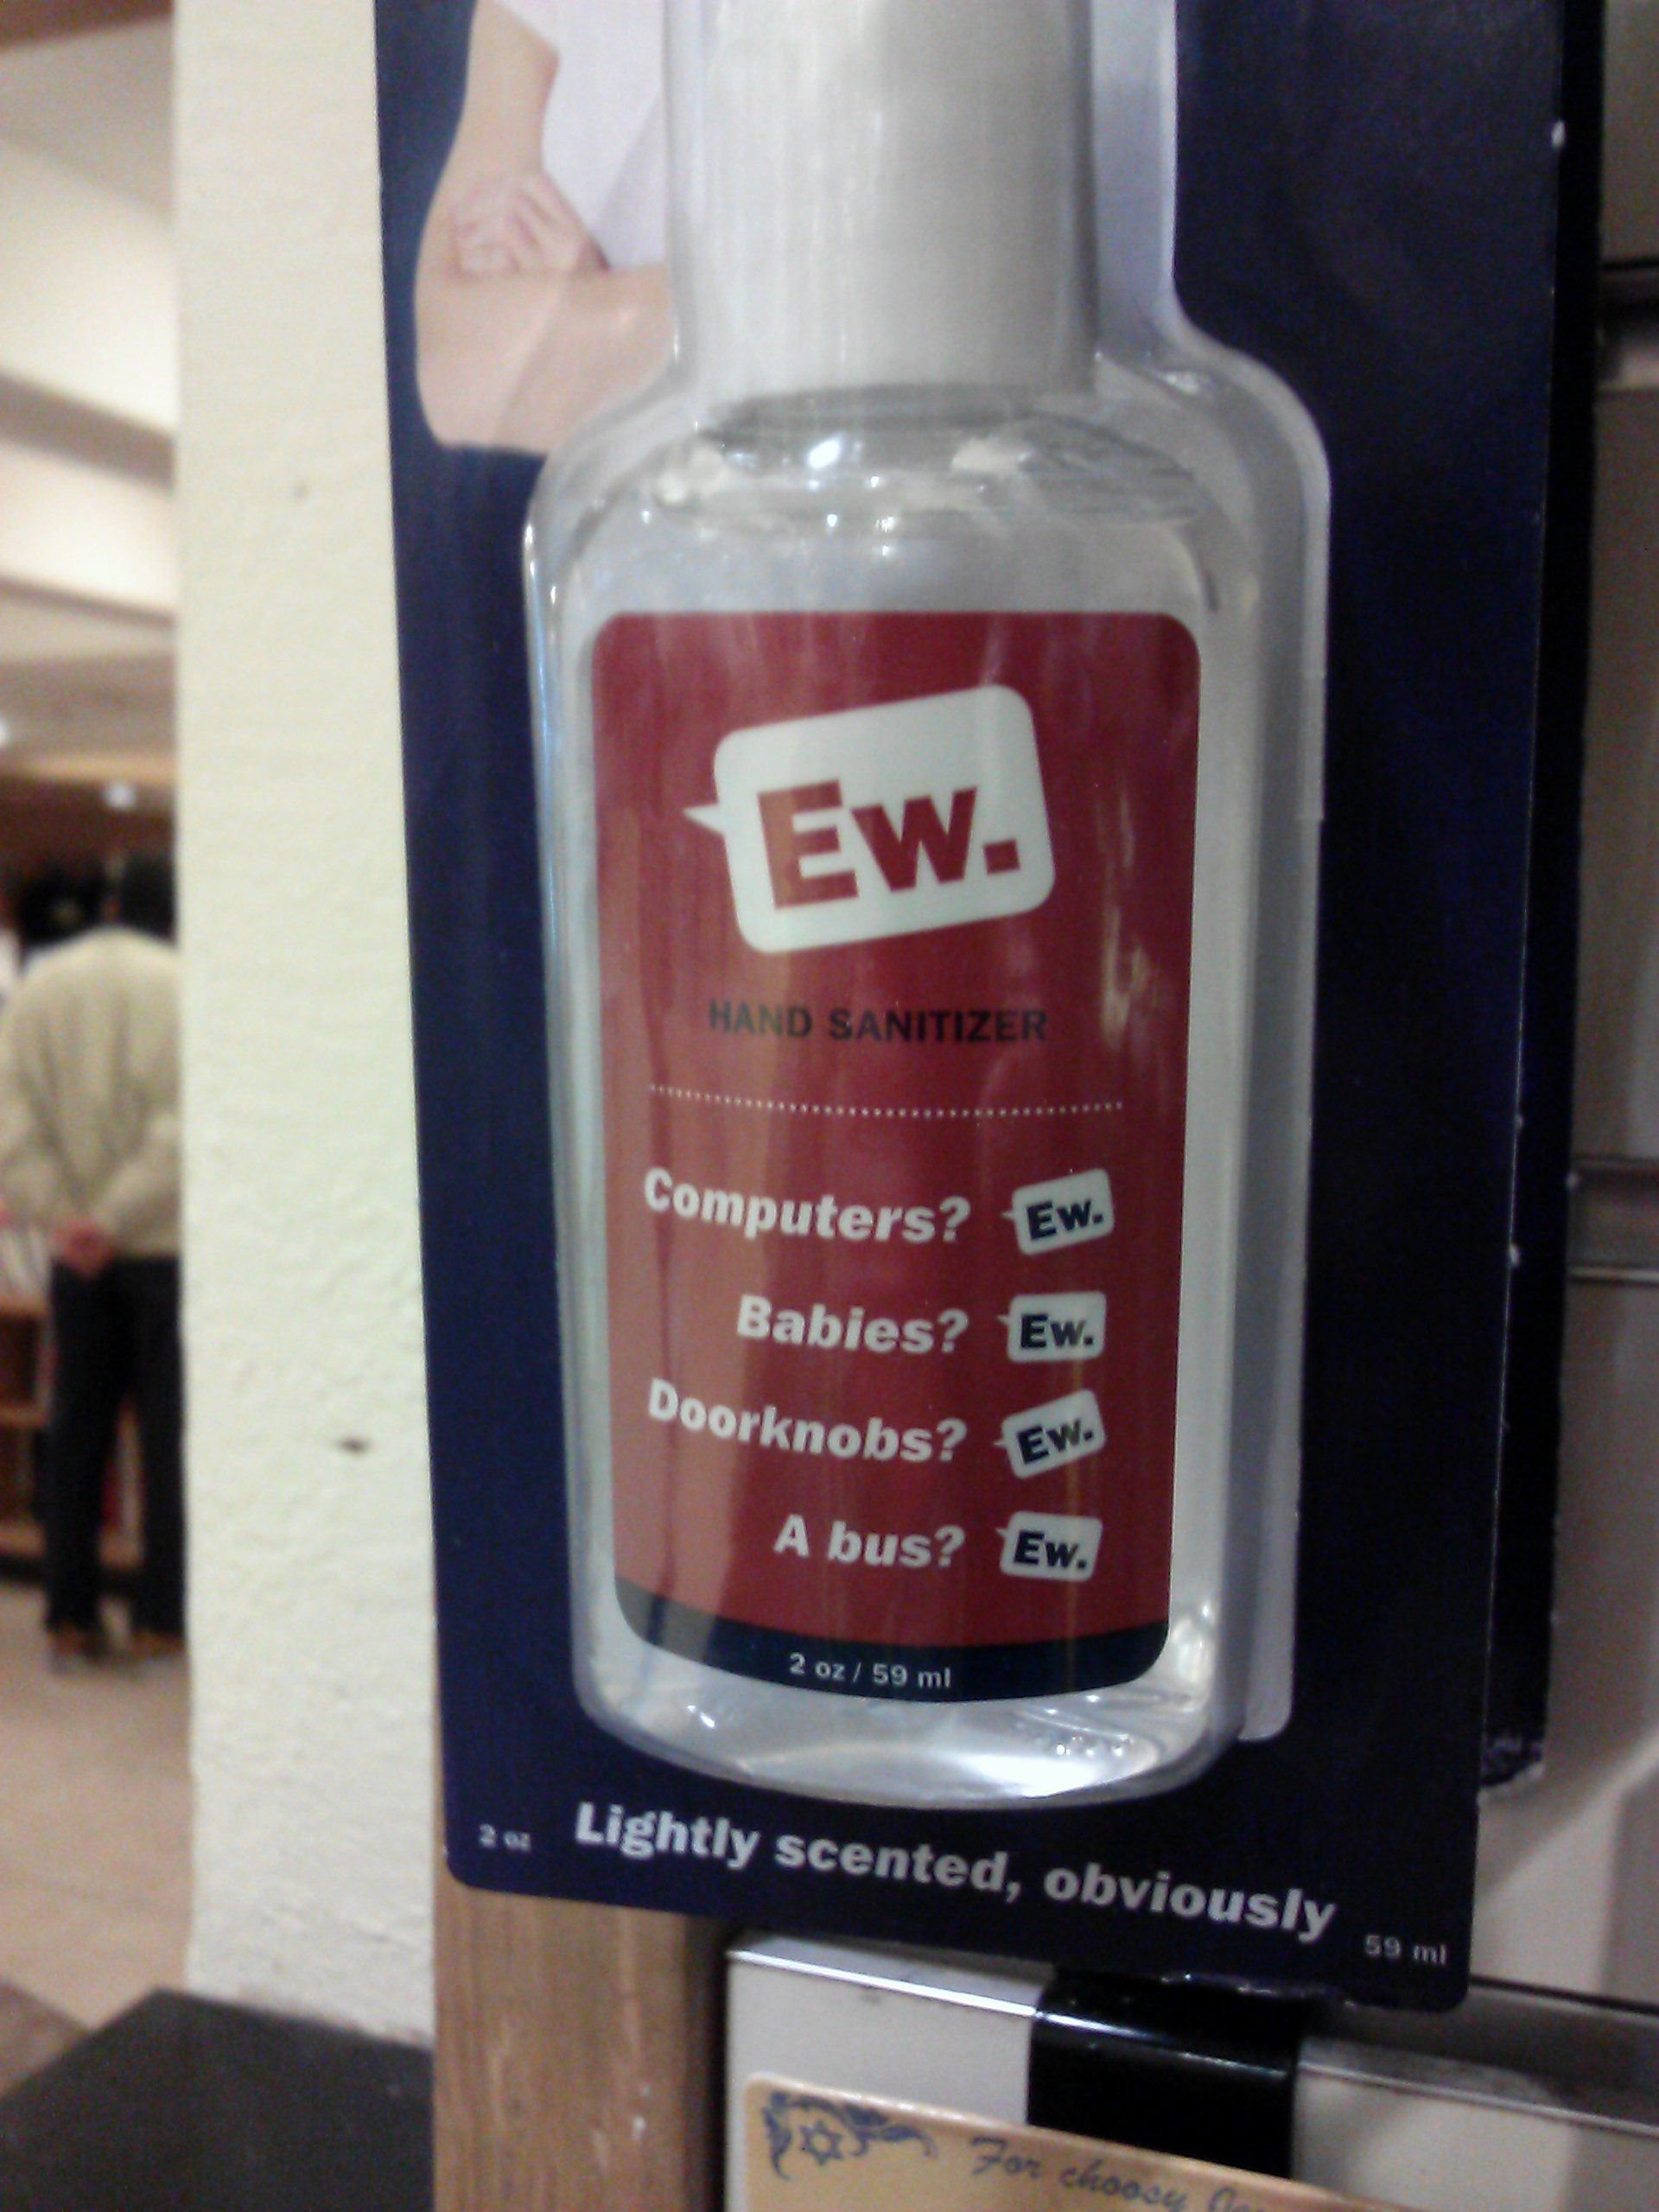 Hilarious Marketing For Hand Sanitizer Hand Sanitizer Sanitizer